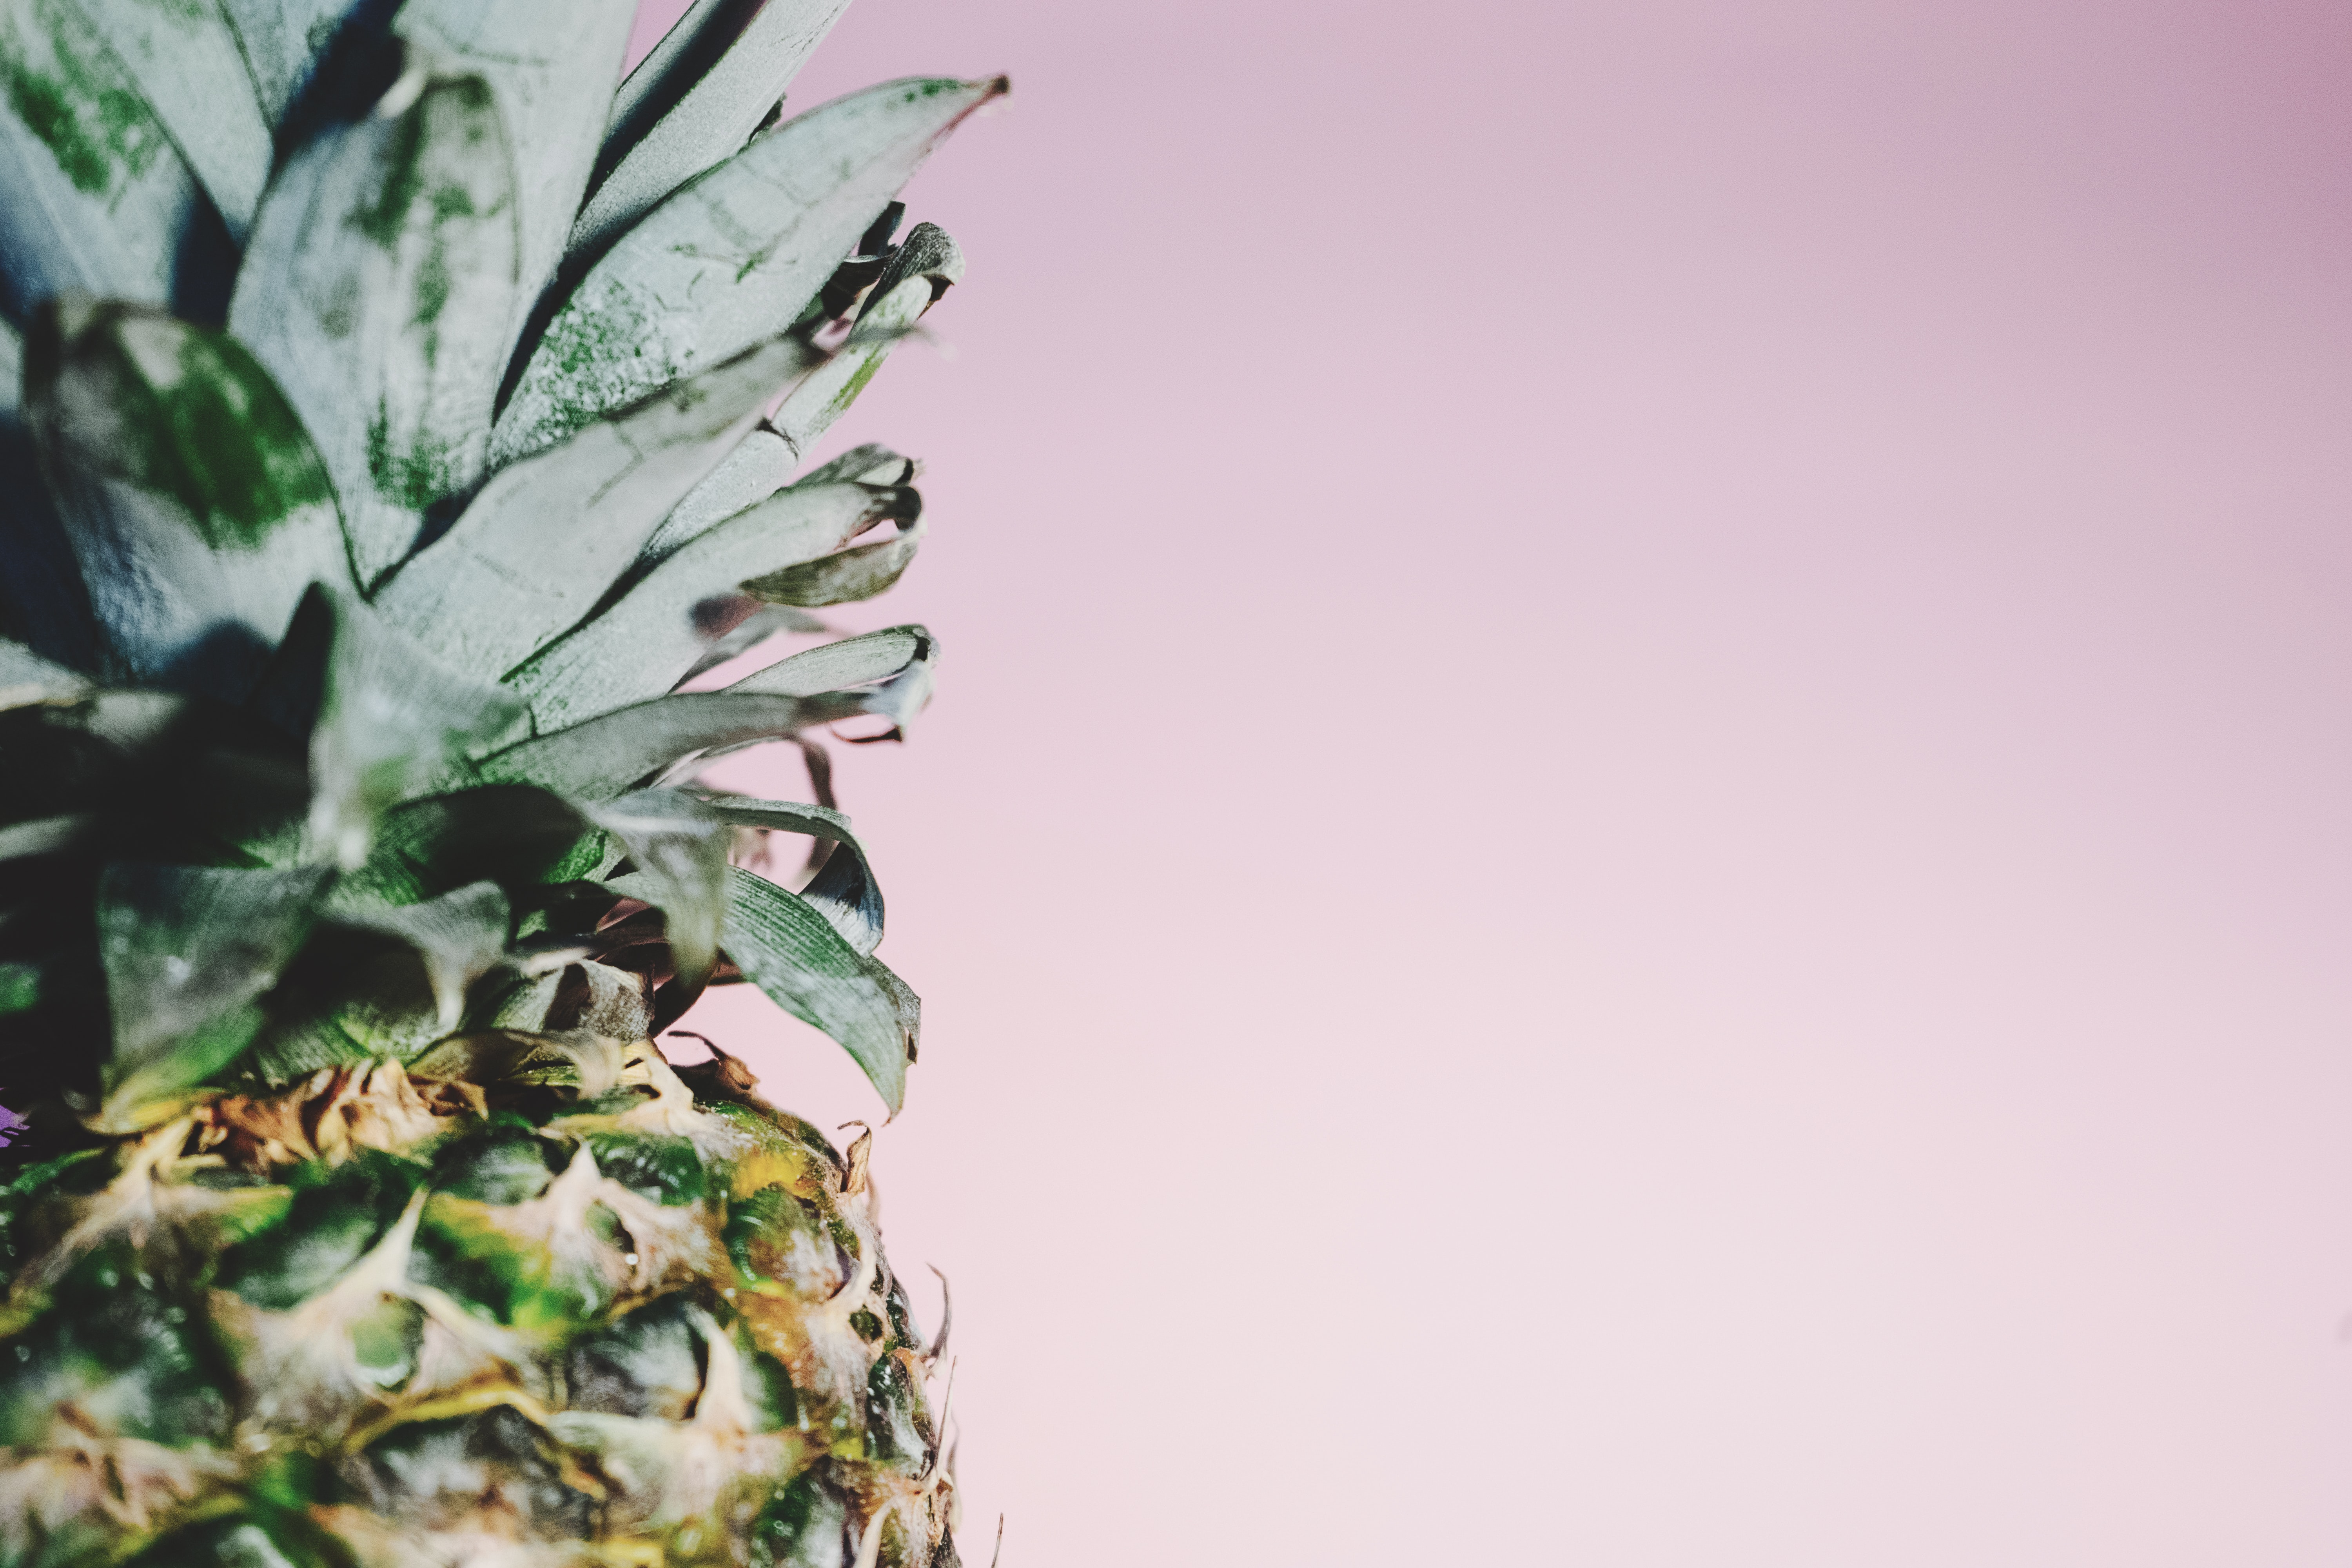 Spines and green top of a fresh pineapple on a pink background